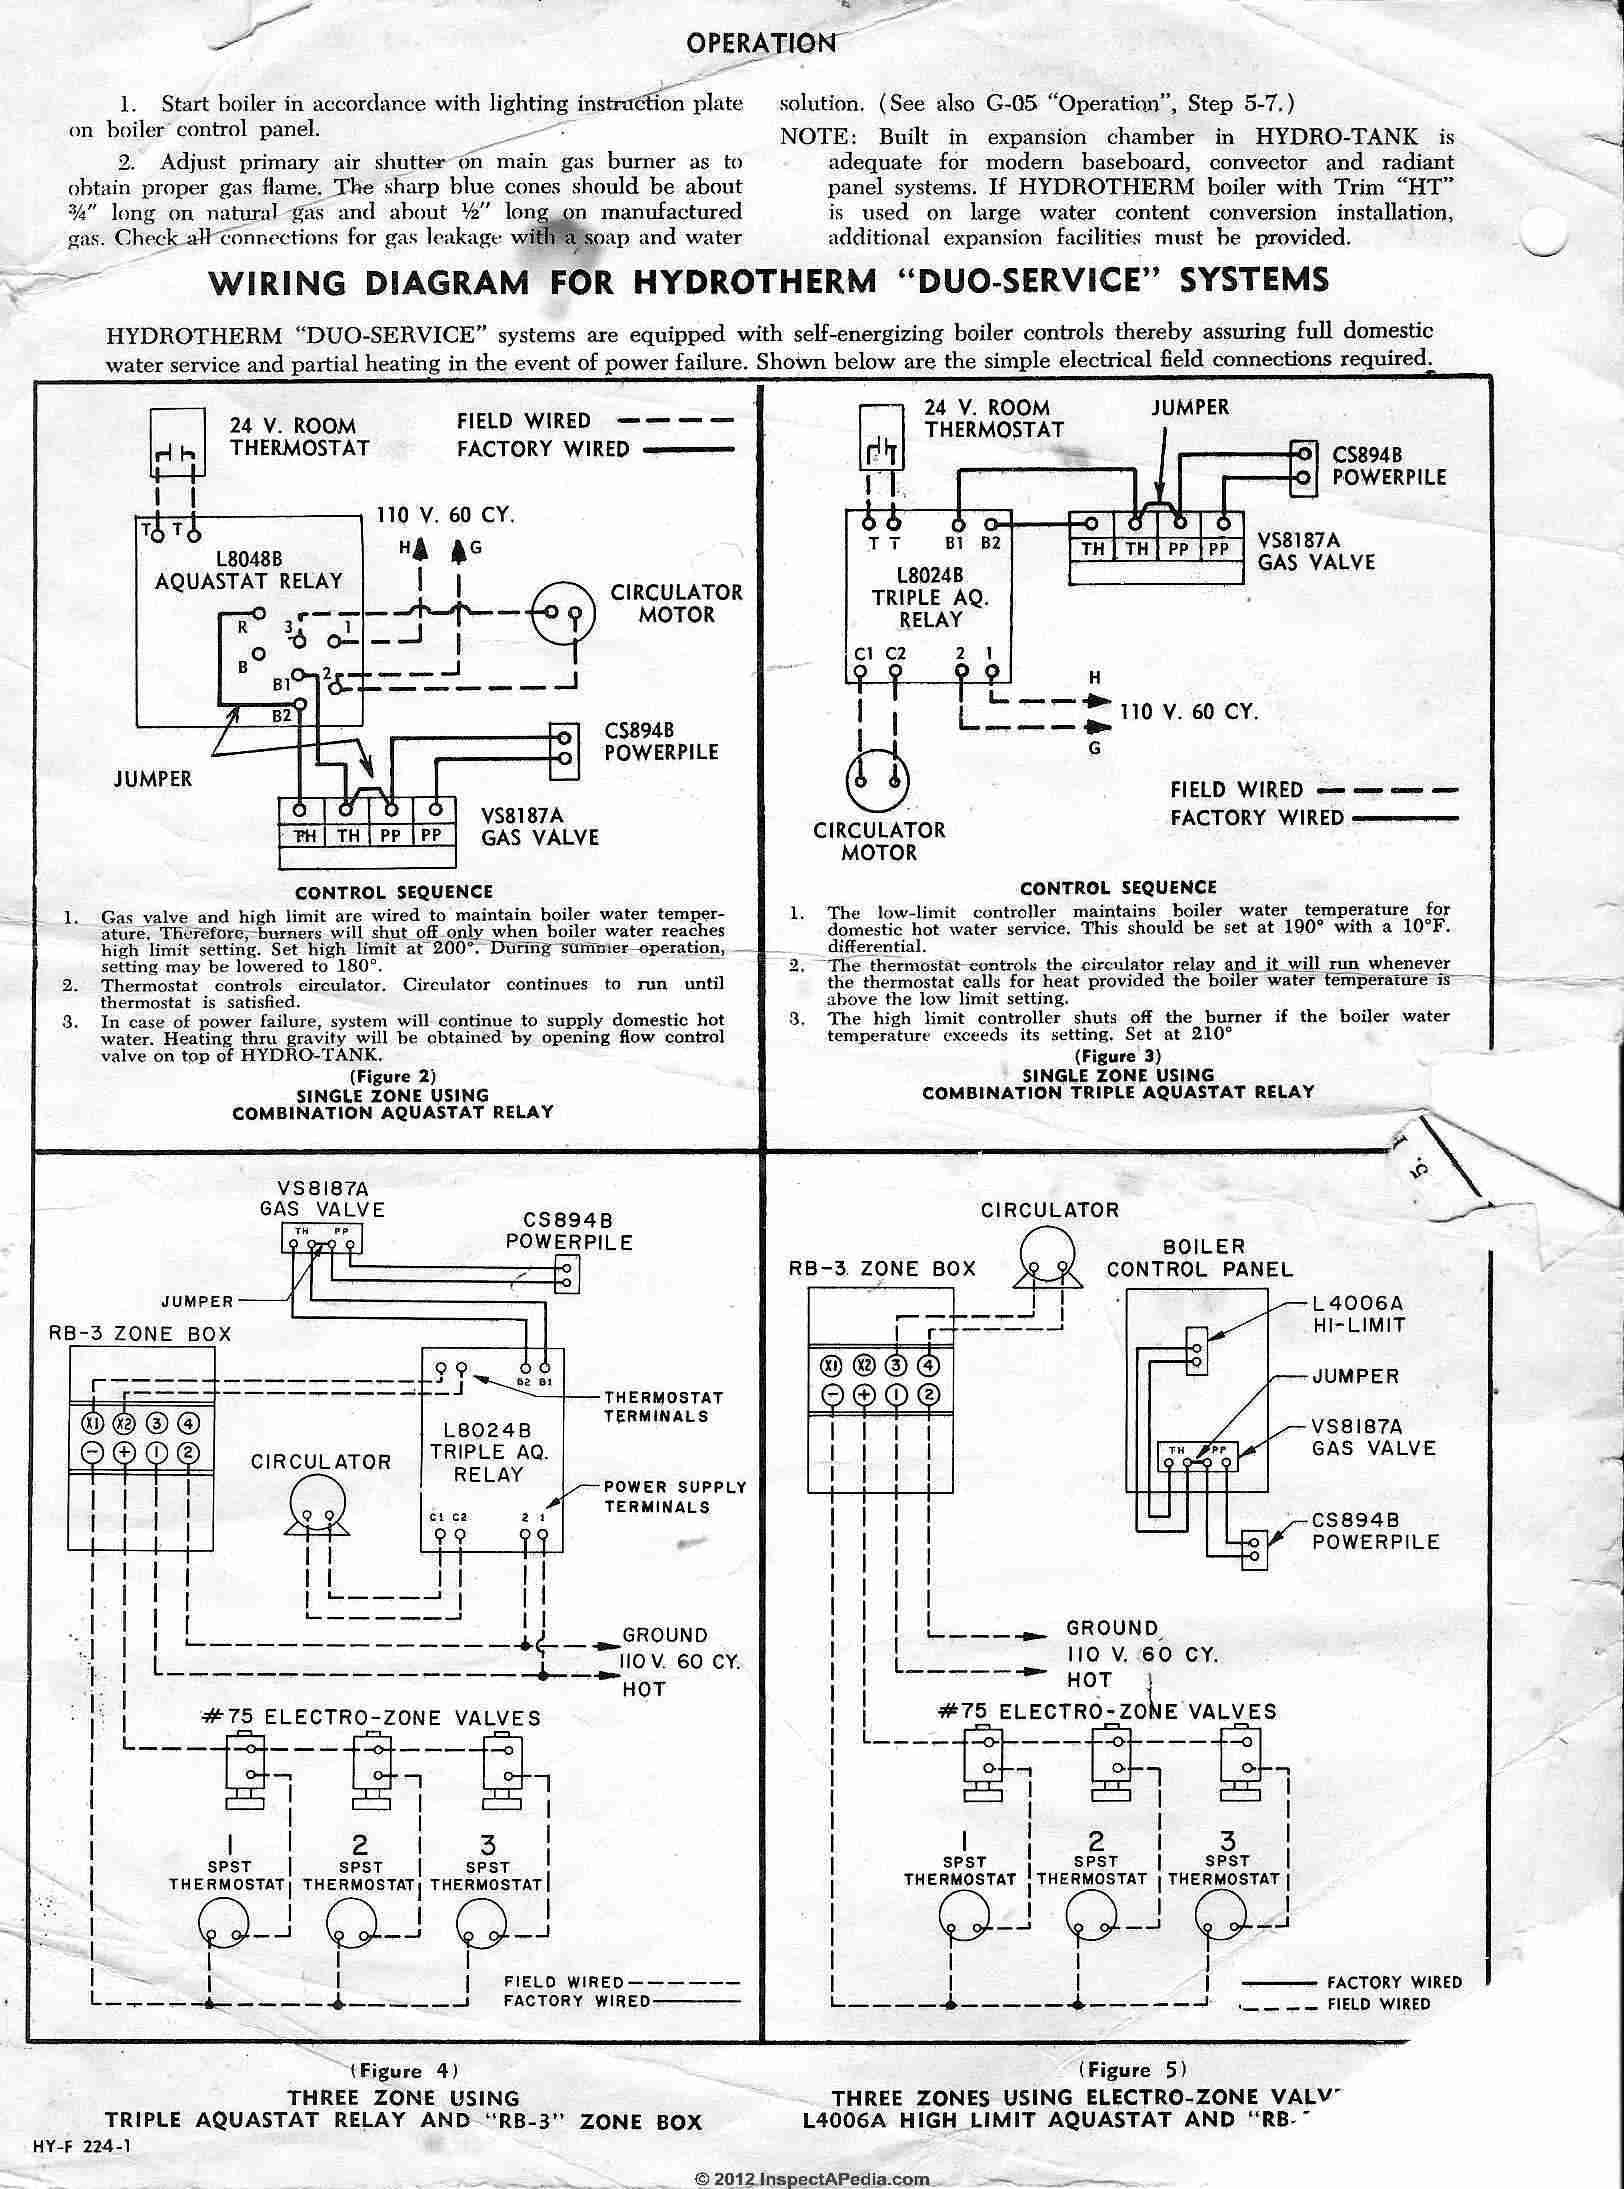 L8024B_Aquastat_0422_DJFcs heating boiler aquastat control diagnosis, troubleshooting, repair heat only boiler wiring diagram at bayanpartner.co